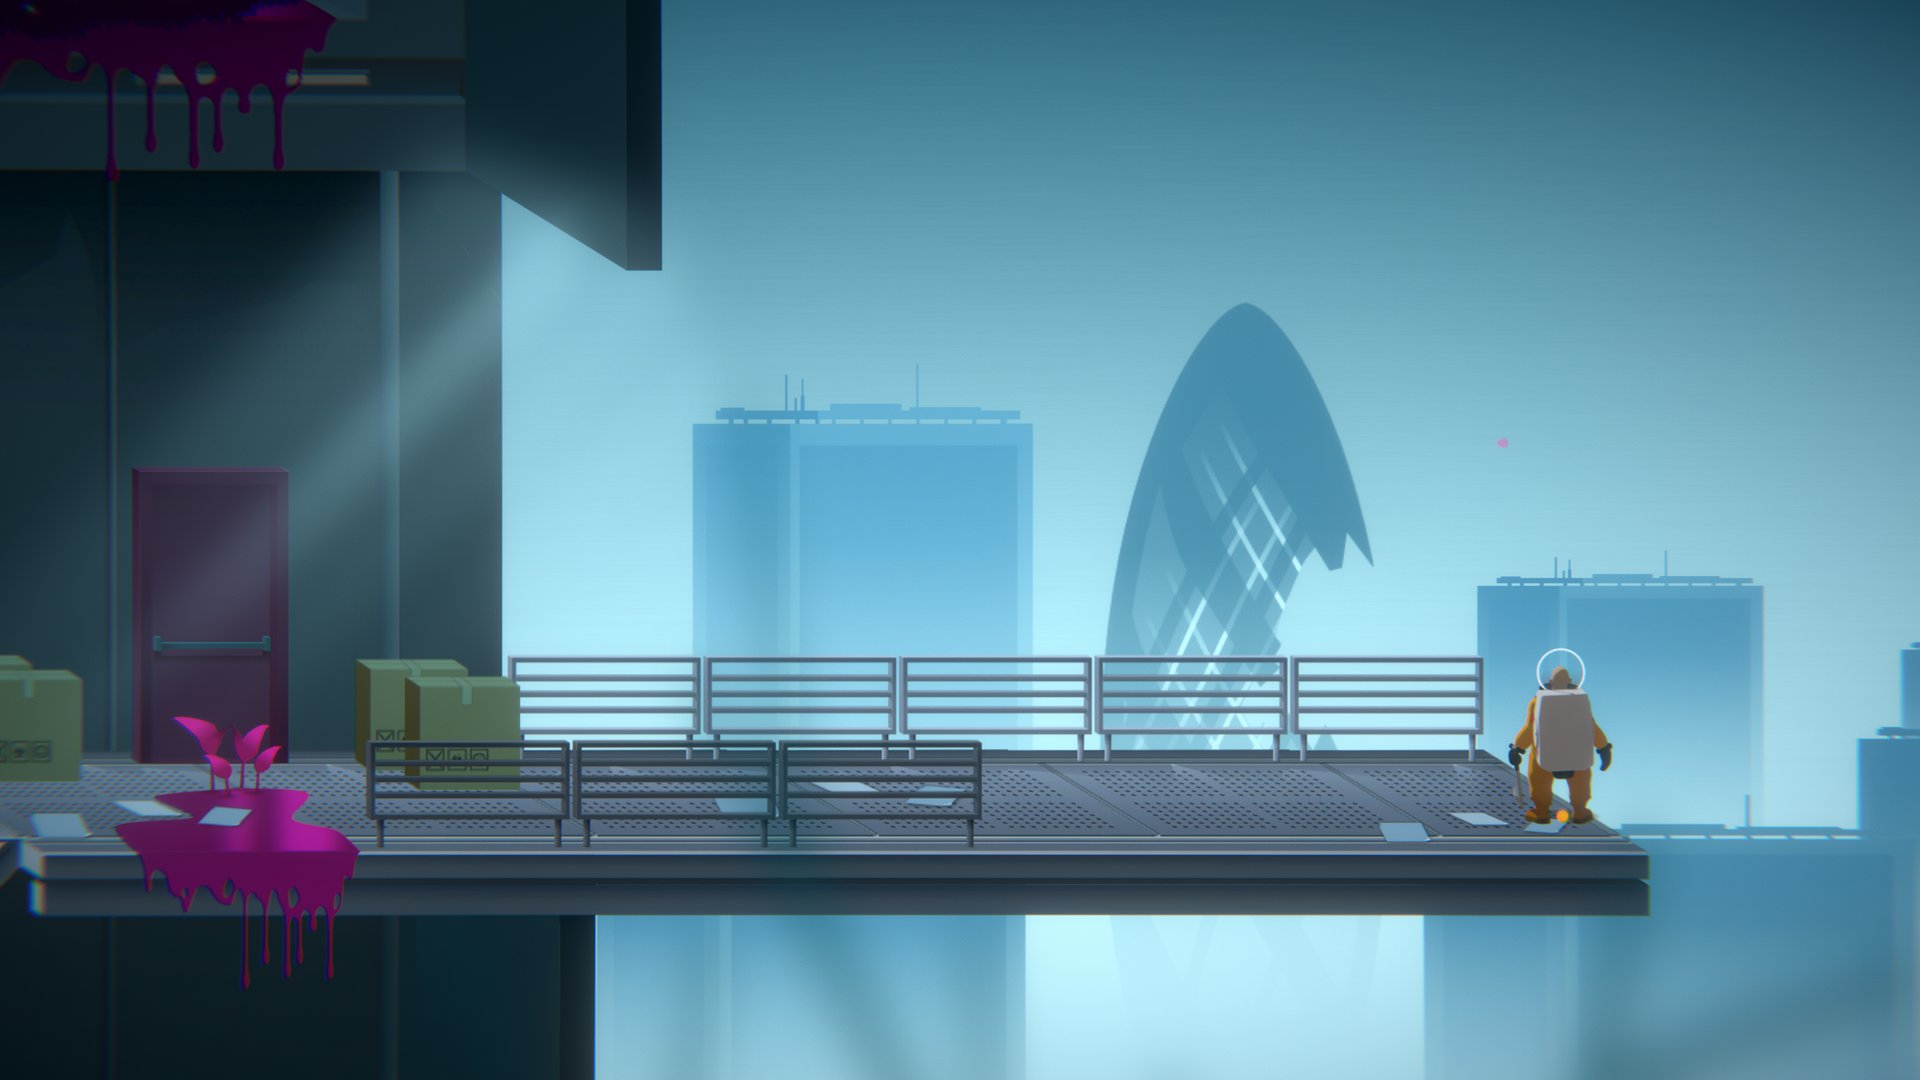 A screenshot from Golf Club: Wasteland, you're looking off into the distance towards some derelict skyscrapers.